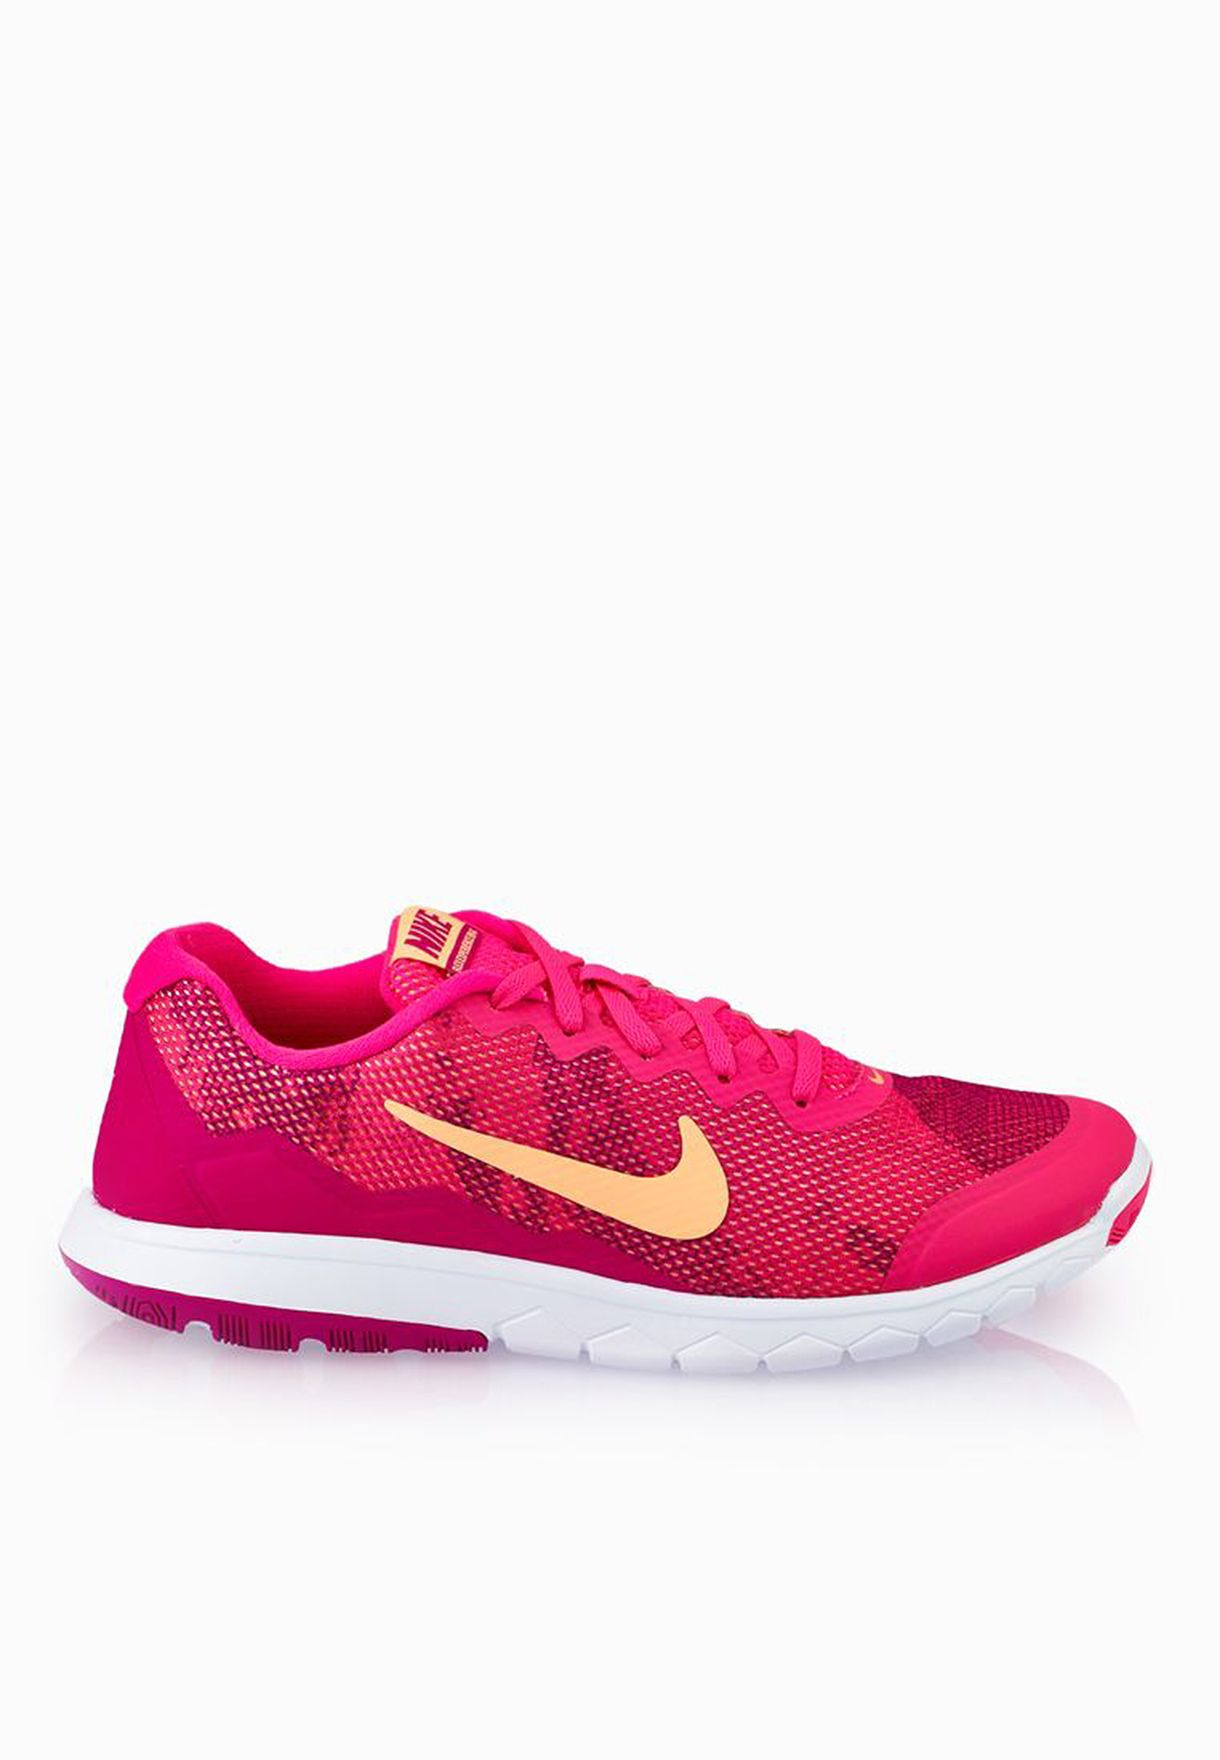 f18de0e03a90c Shop Nike pink Flex Experience Rn 4 Prem 749177-600 for Women in Bahrain -  NI727SH15TEE